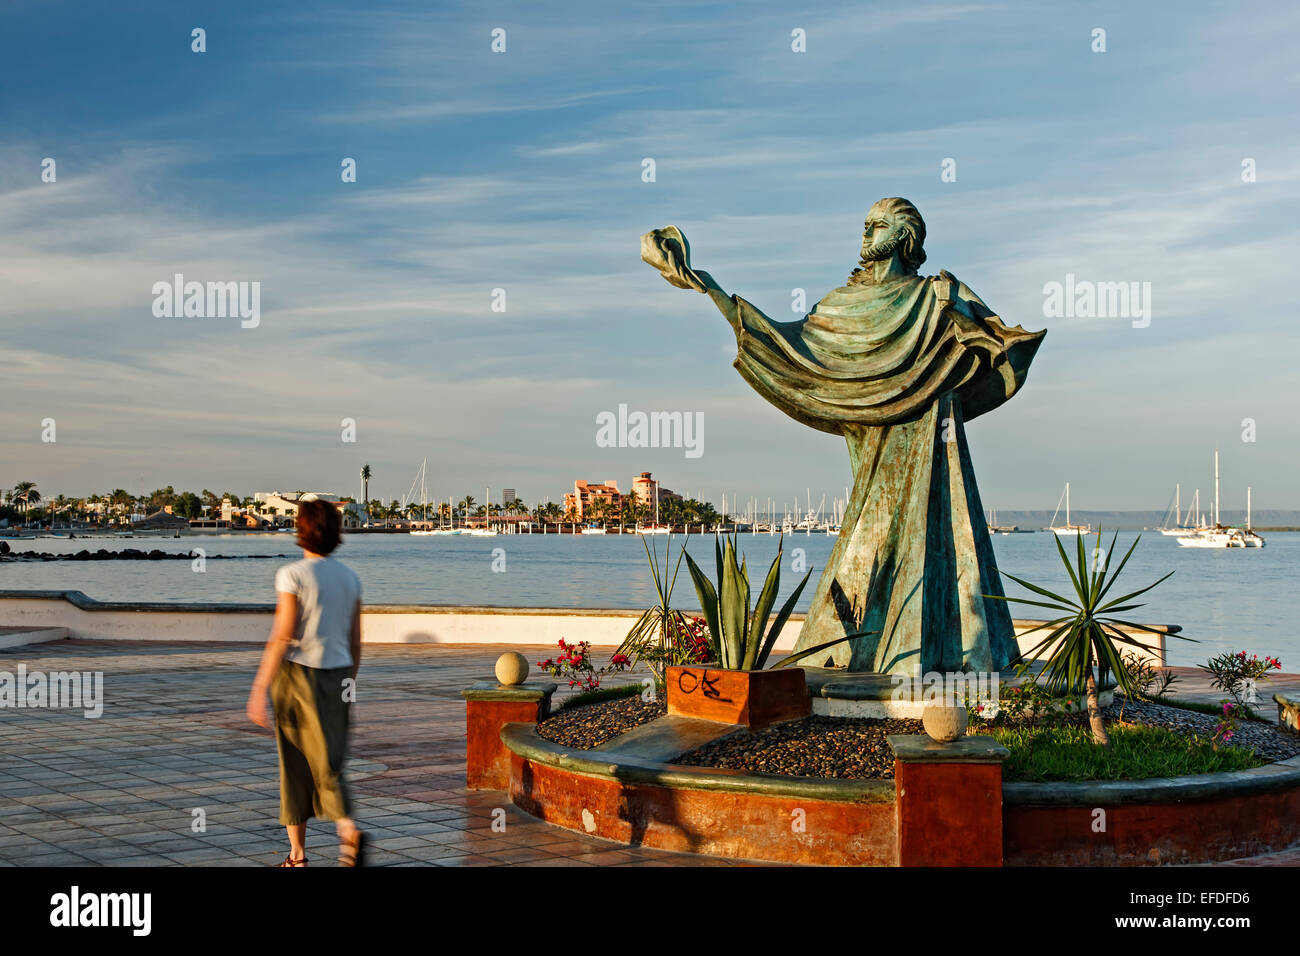 Woman walking by sculpture of person holding a shell and bay, Malecon (seaside promenade), La Paz, Baja California Stock Photo